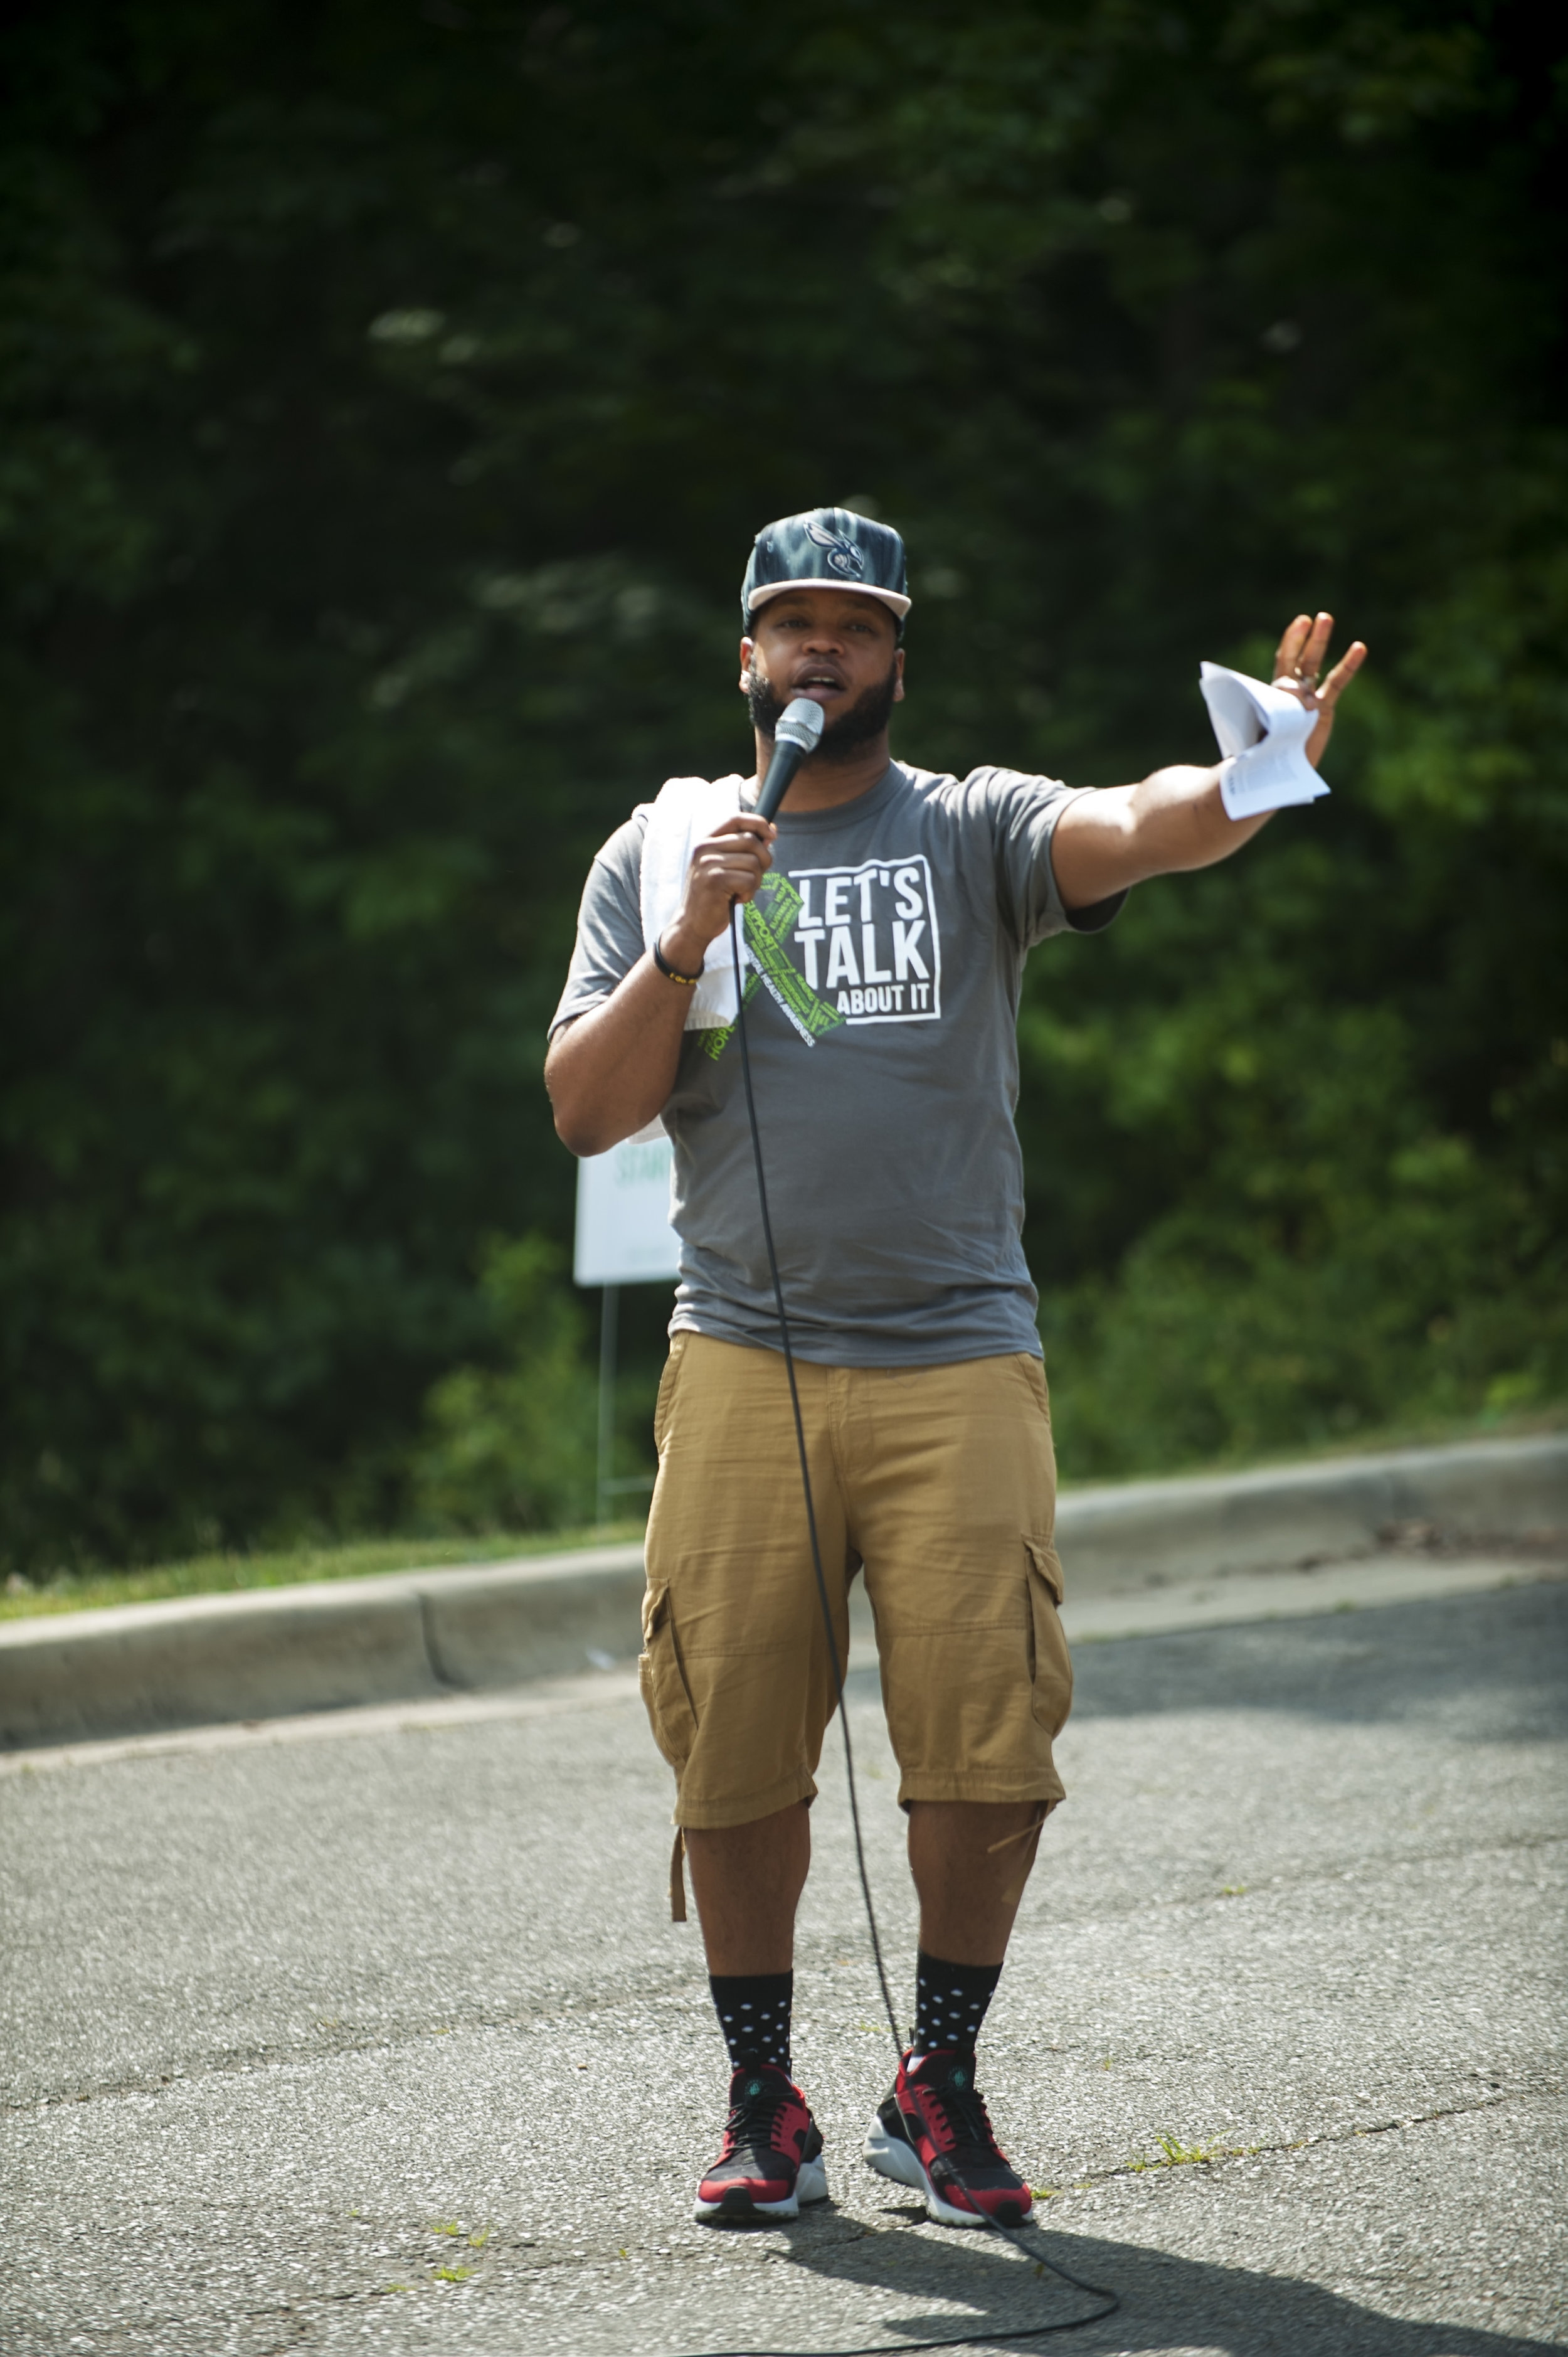 2nd Annual Let's Talk About It Mental Health Awareness Walk @ Park Rd Park 5-20-17 by Jon Strayhorn 097.jpg